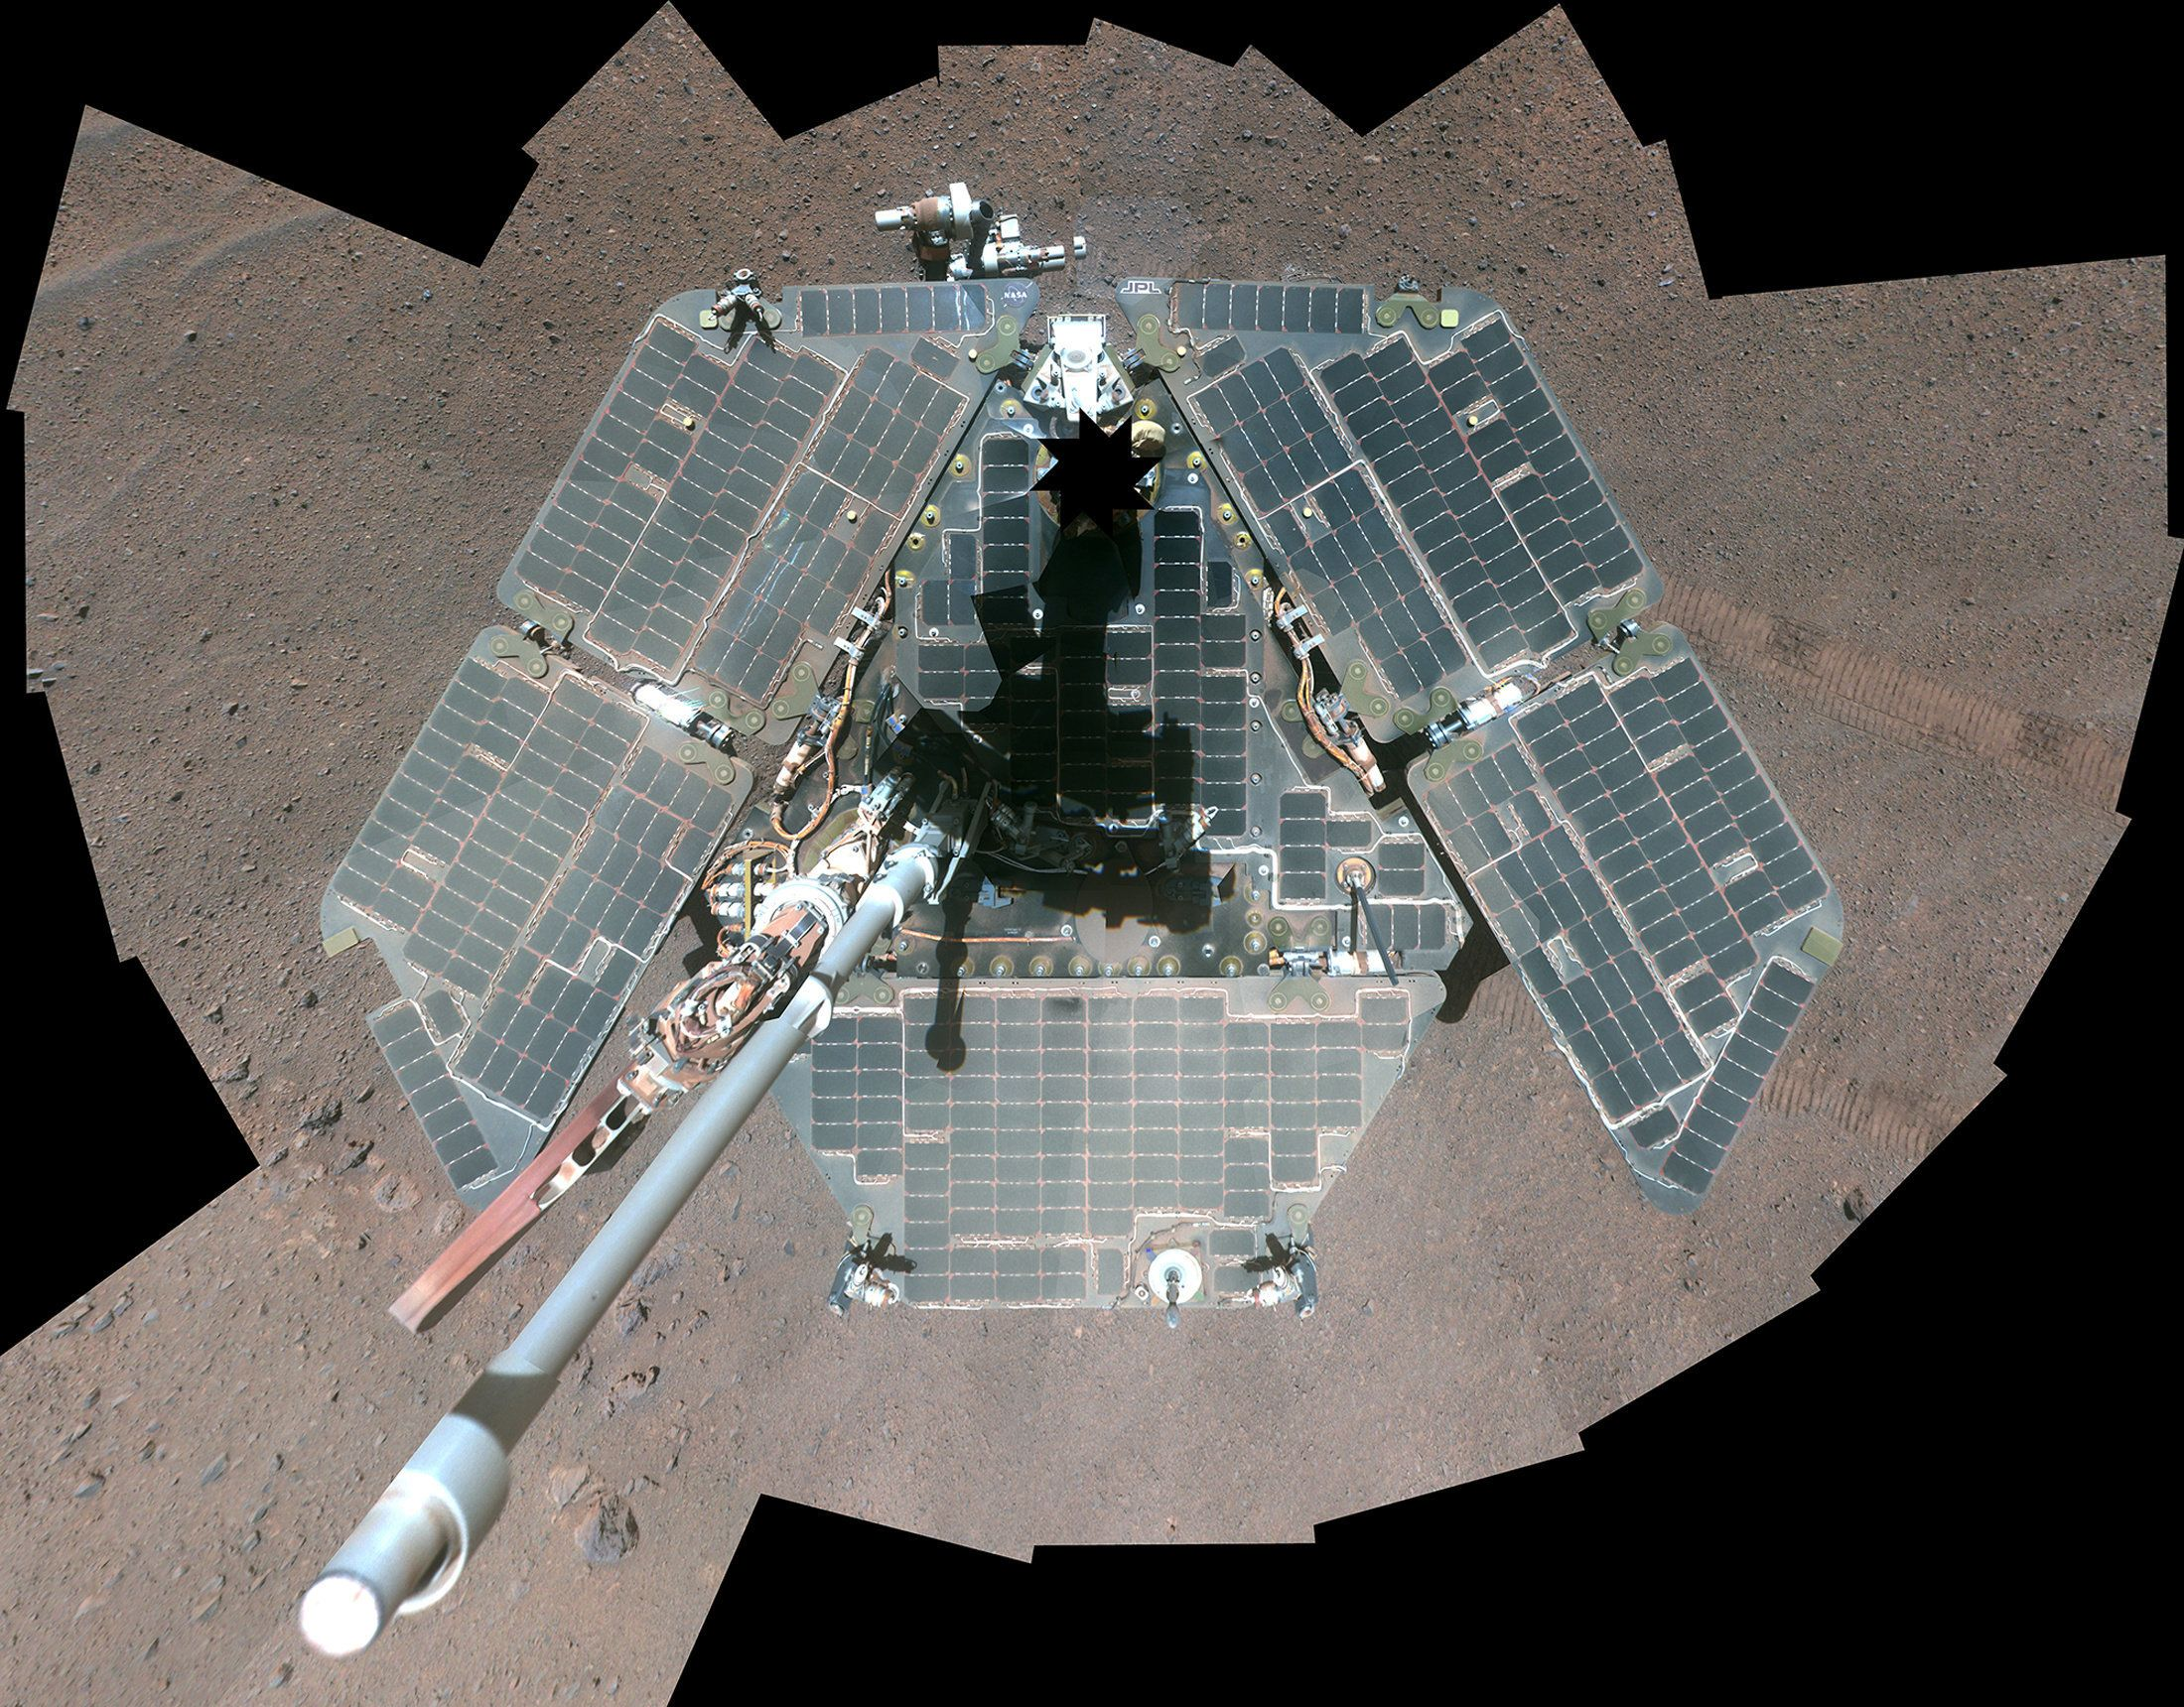 A self-portrait of NASA's Mars Exploration Rover Opportunity, a combination of multiple frames taken by Opportunity's panoramic camera (Pancam) during March 22 through March 24, 2014 on planet Mars is seen in this NASA/JPL-Caltech image released on April 17, 2014.   Courtesy NASA/JPL-Caltech/Cornell University/Arizona State University/Handout via REUTERS  ATTENTION EDITORS - THIS IMAGE HAS BEEN SUPPLIED BY A THIRD PARTY.